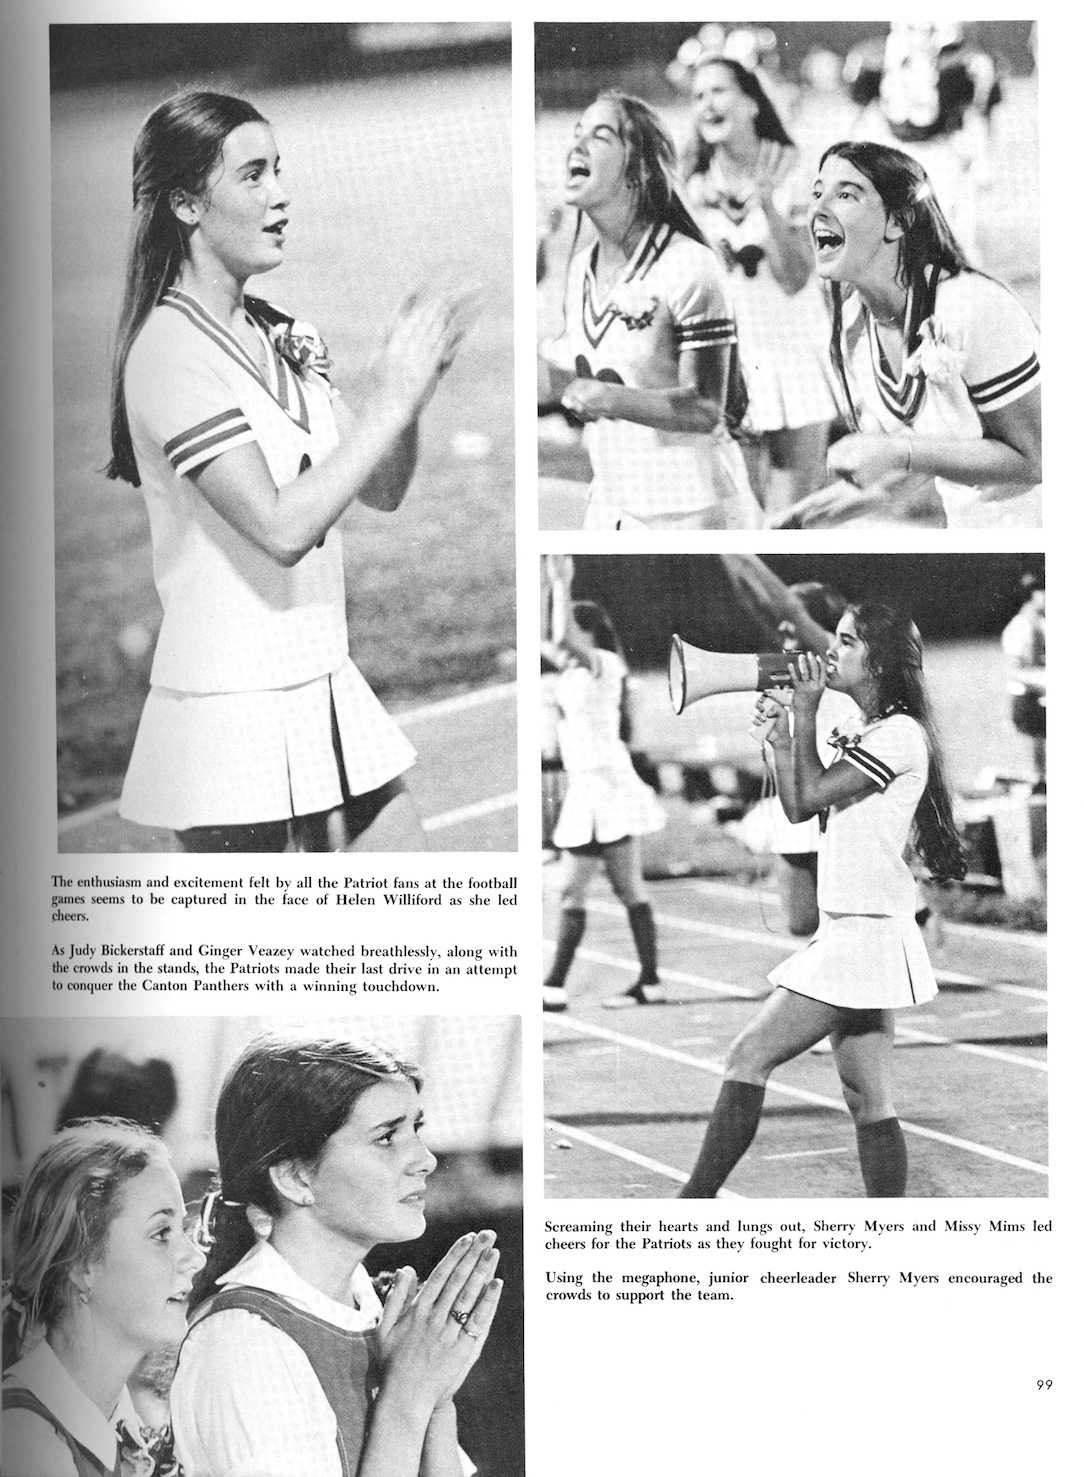 1977 yearbook cheerleaders